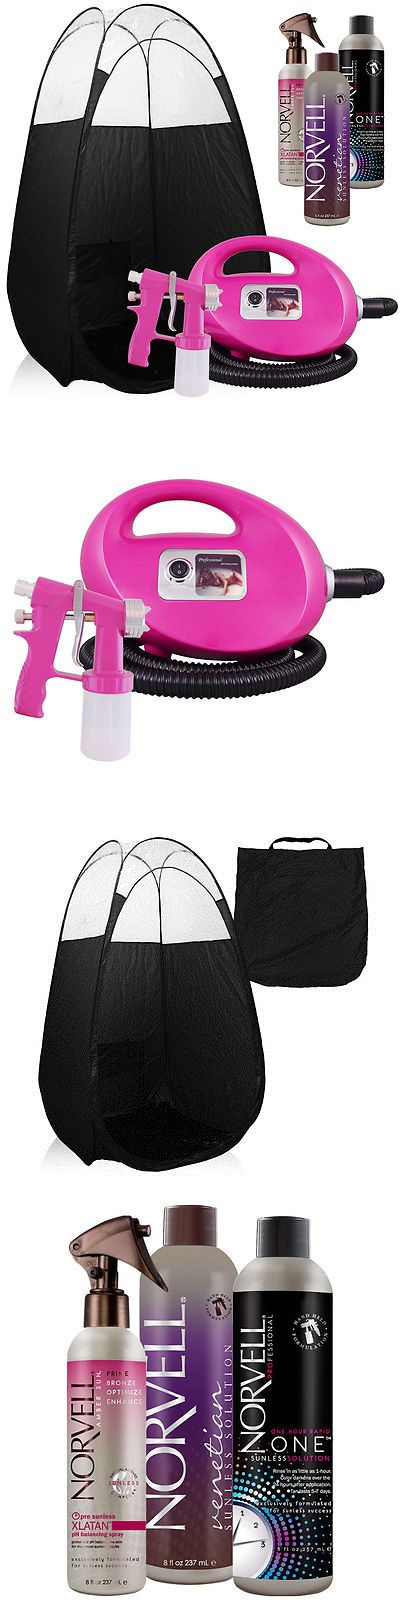 Airbrush Tanning Kits: Pink Fascination Fx Spray Tanning Kit With Norvell Tan Solution And Black Tent BUY IT NOW ONLY: $209.0